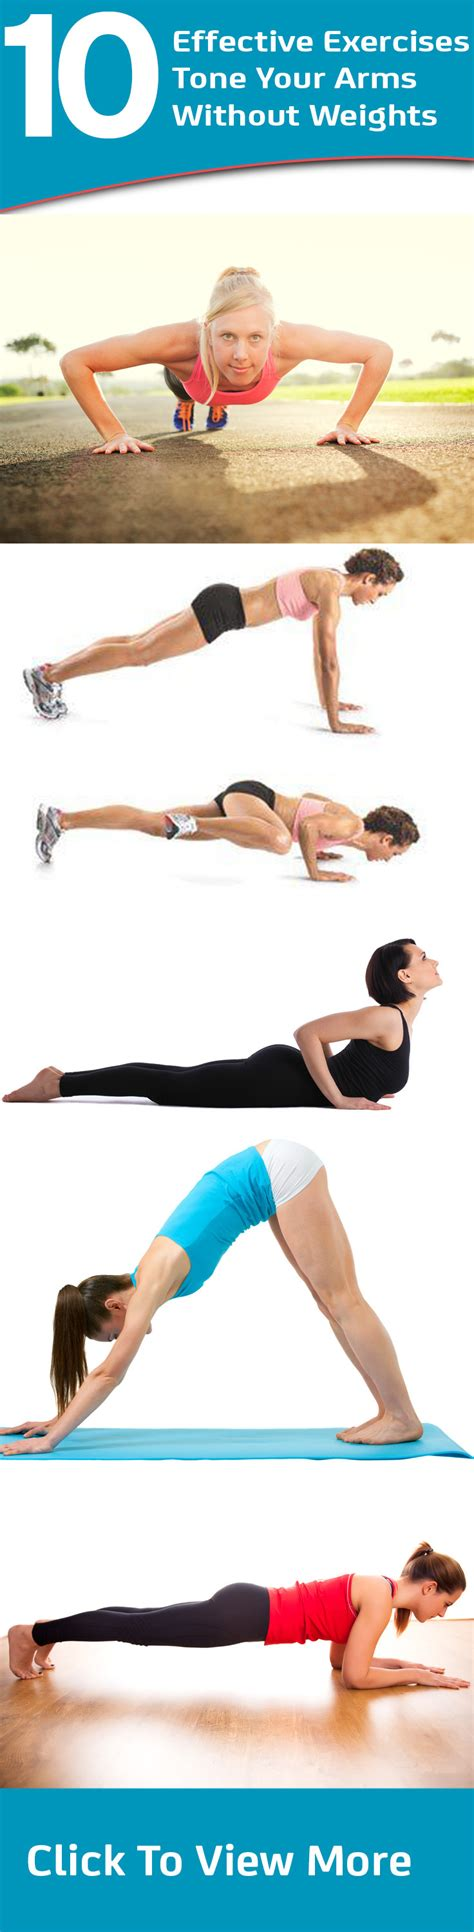 effective exercising picture 11